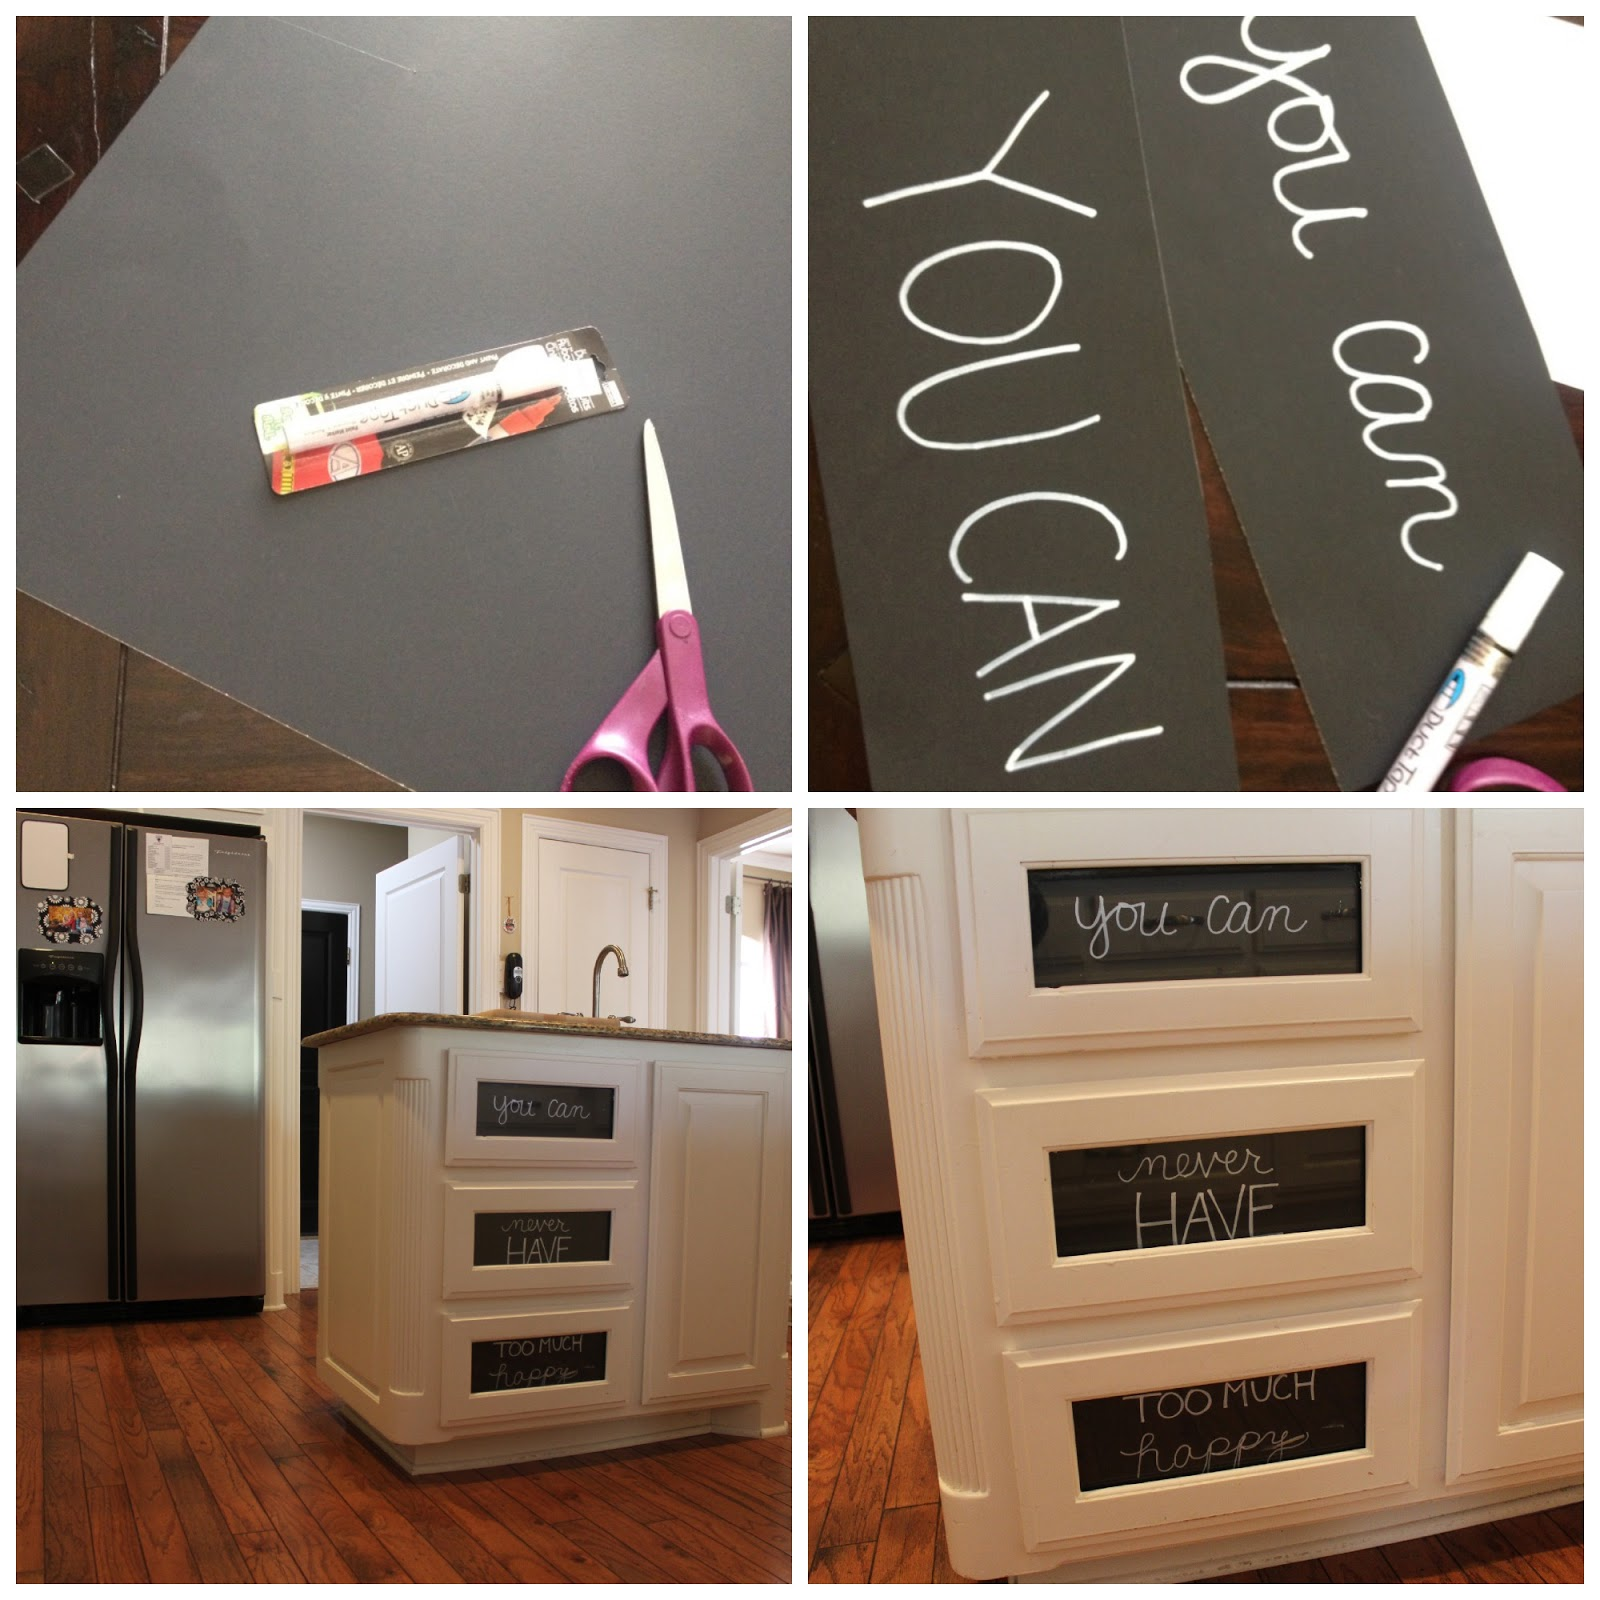 Chalk Paint Used On Kitchen Cabinets: Crafty Texas Girls: Crafty How-To: Cabinet Door